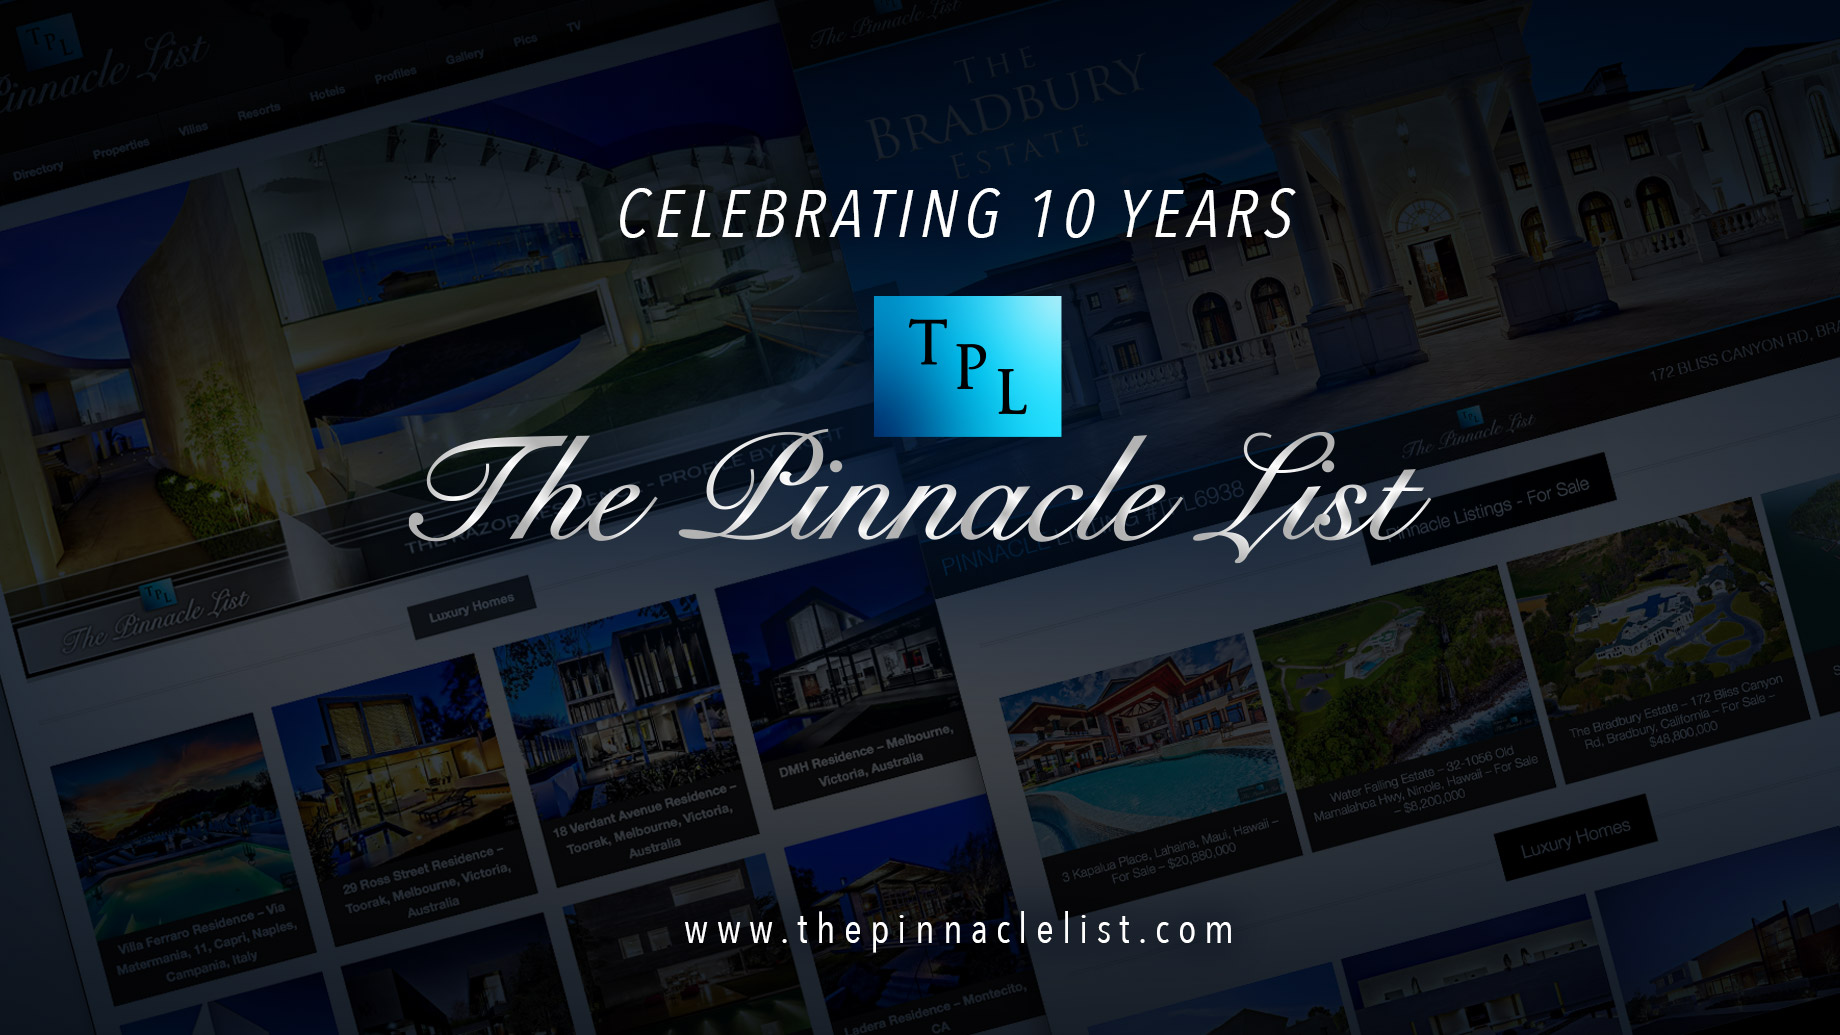 10 Years of The Pinnacle List